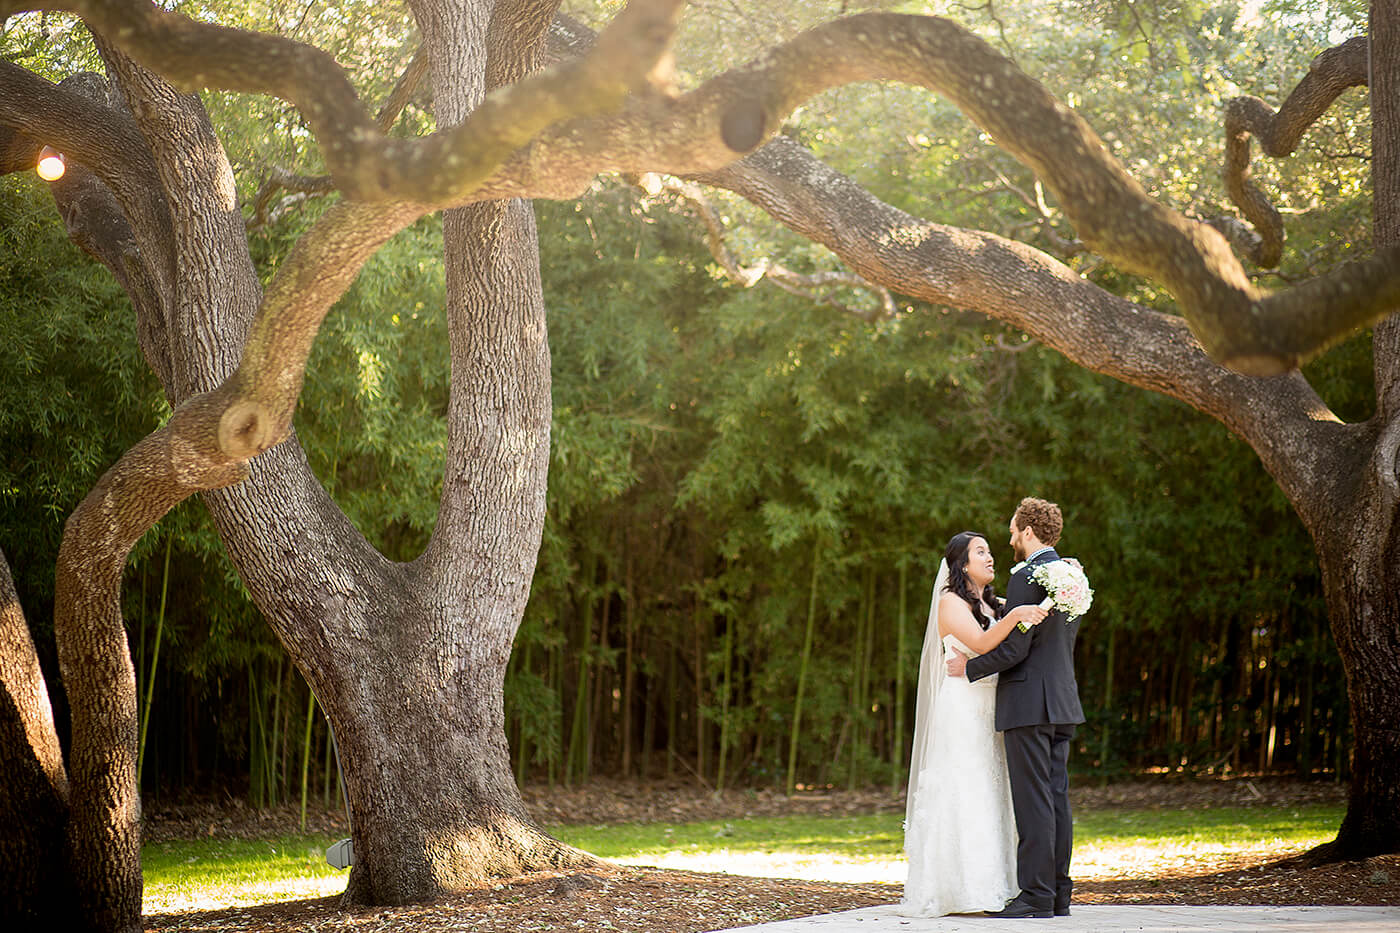 Wedding_Couples_Photographer_Austin_Texas_Dennis_Burnett_29